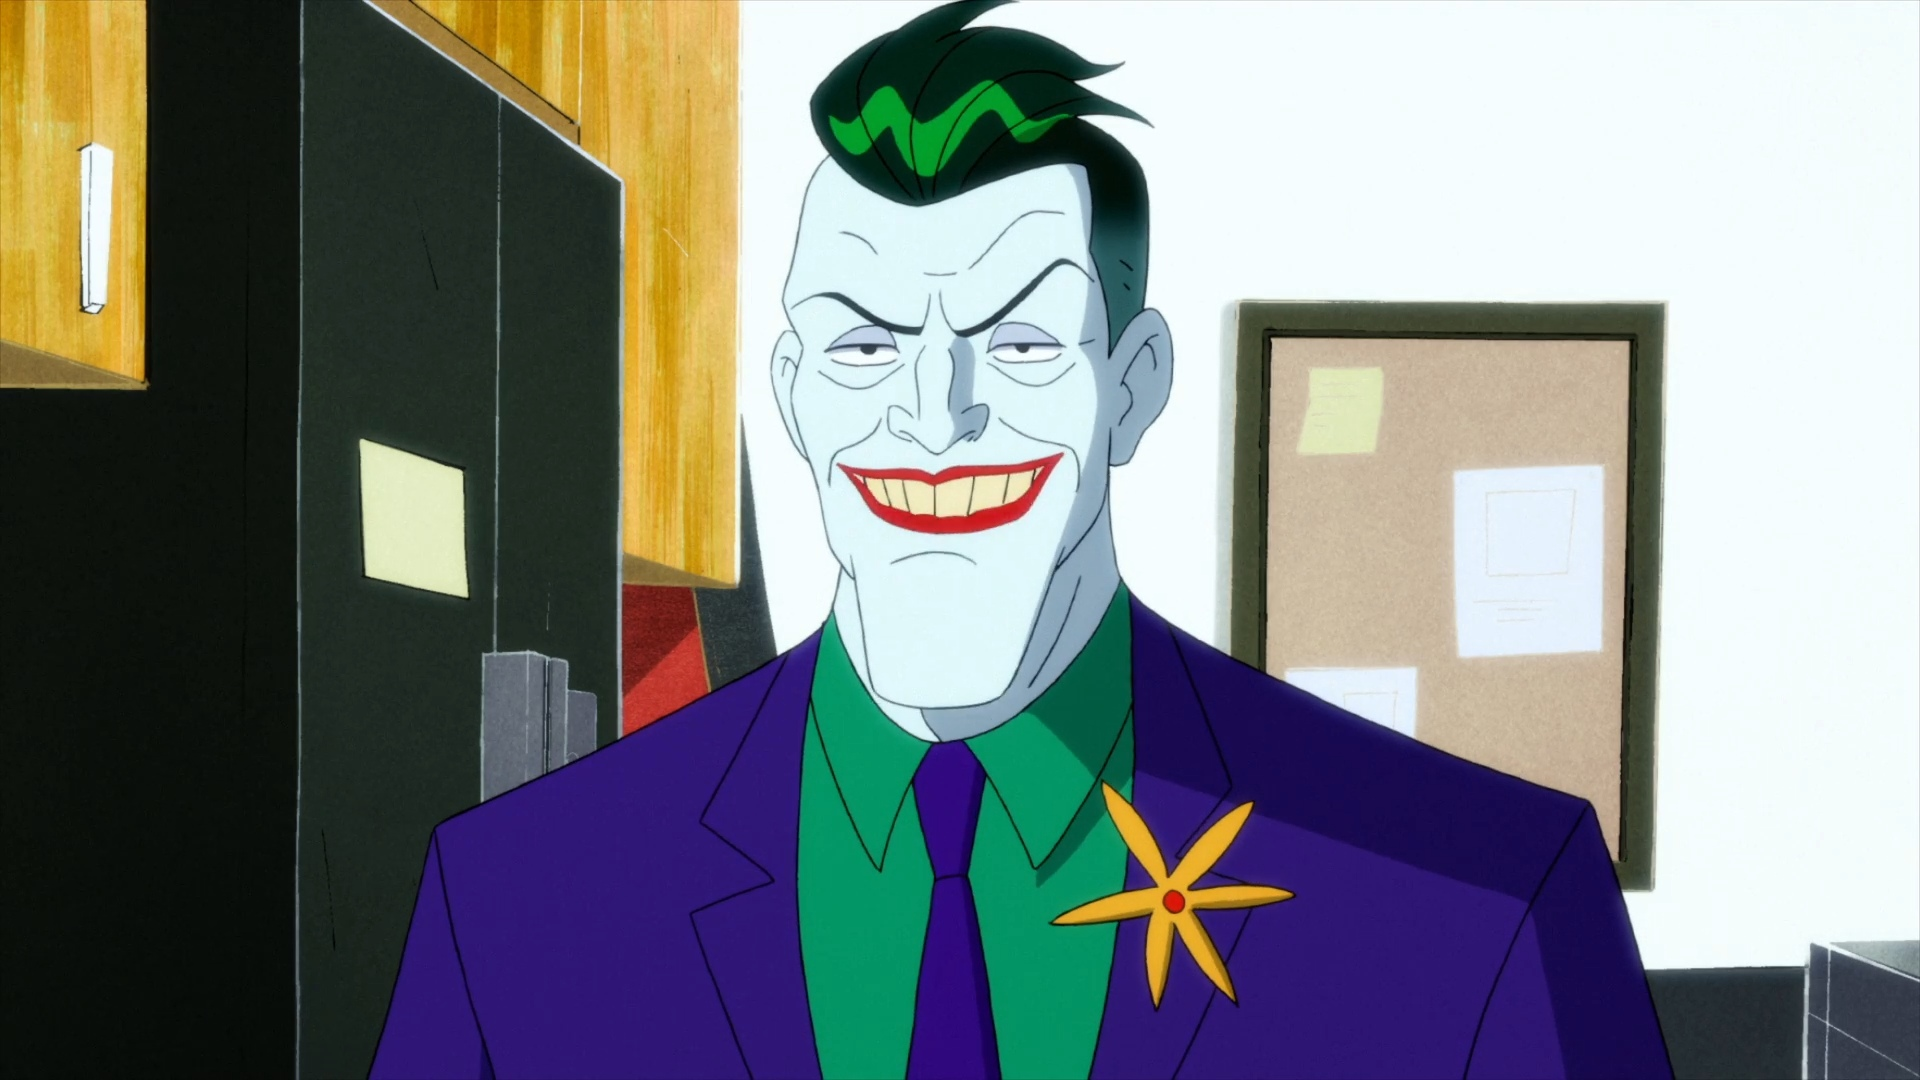 Joker (Harley Quinn TV Series)